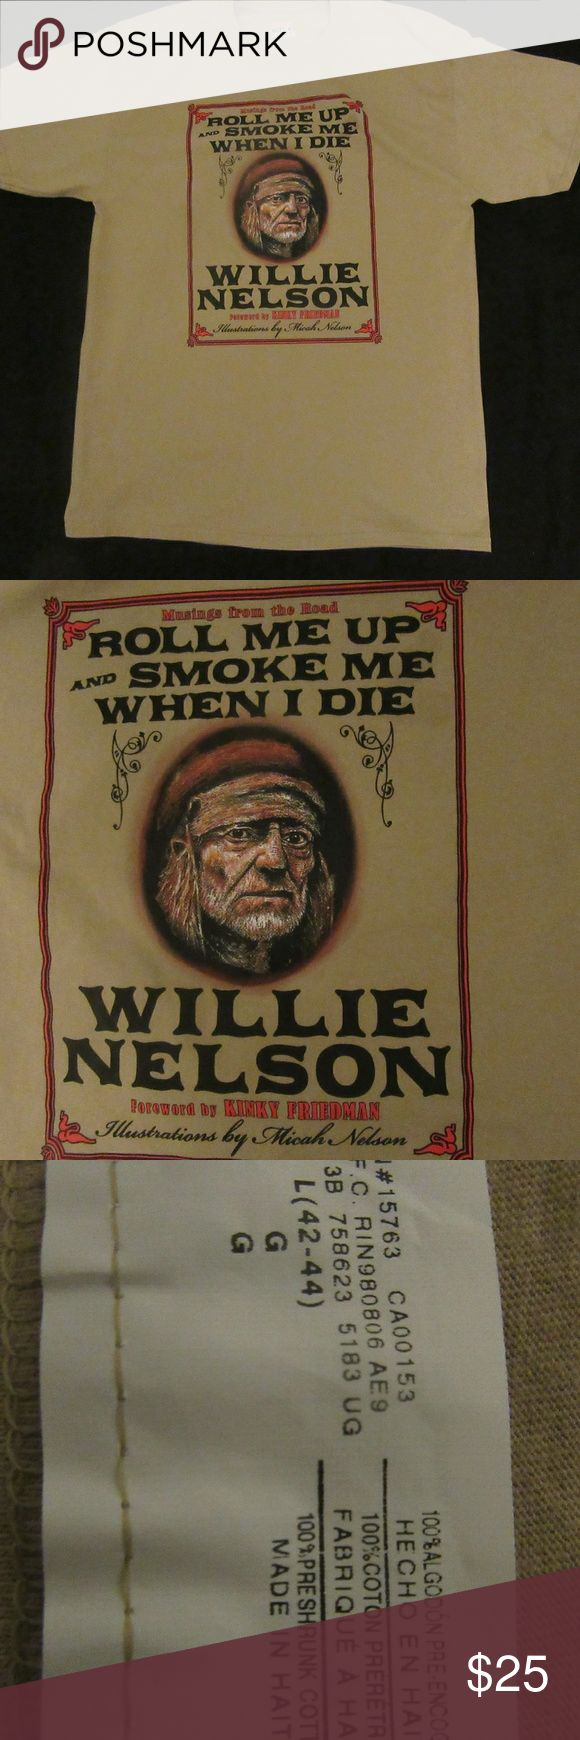 willie nelson roll me up and smoke me 2014 t shirt great shape  willie nelson roll me up and smoke me 2014 ?t shirt L   pit to pit 20.5  top to bottom 30  shoulder to shoulder 19.5  ? Shirts Tees - Short Sleeve